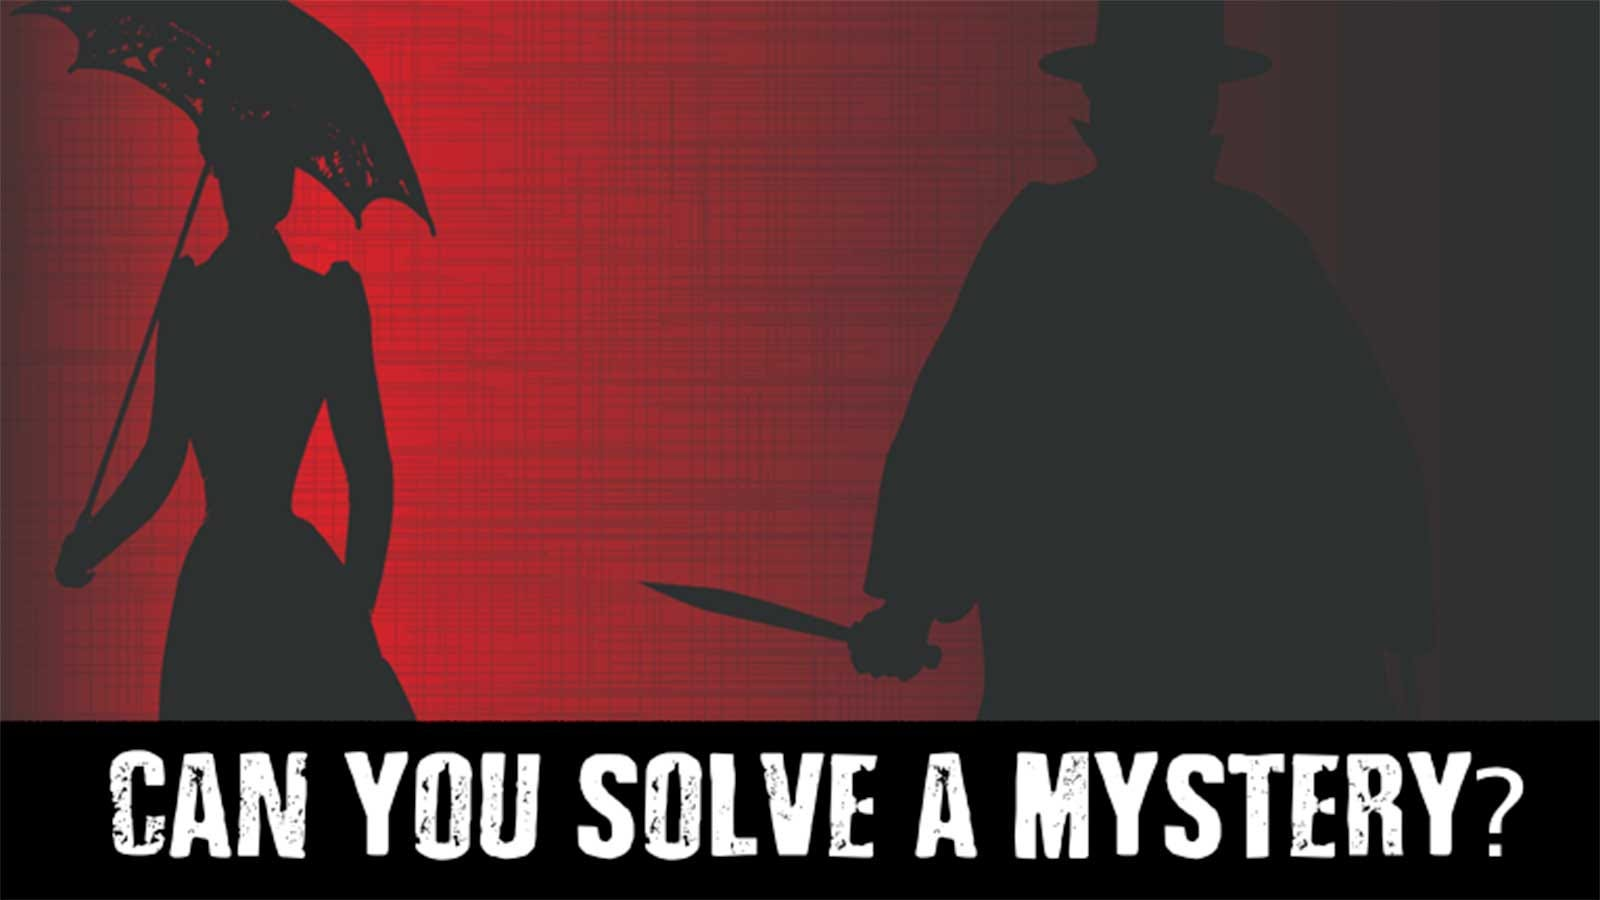 Silhouettes of a man with a knife behind a woman holding an umbrella.